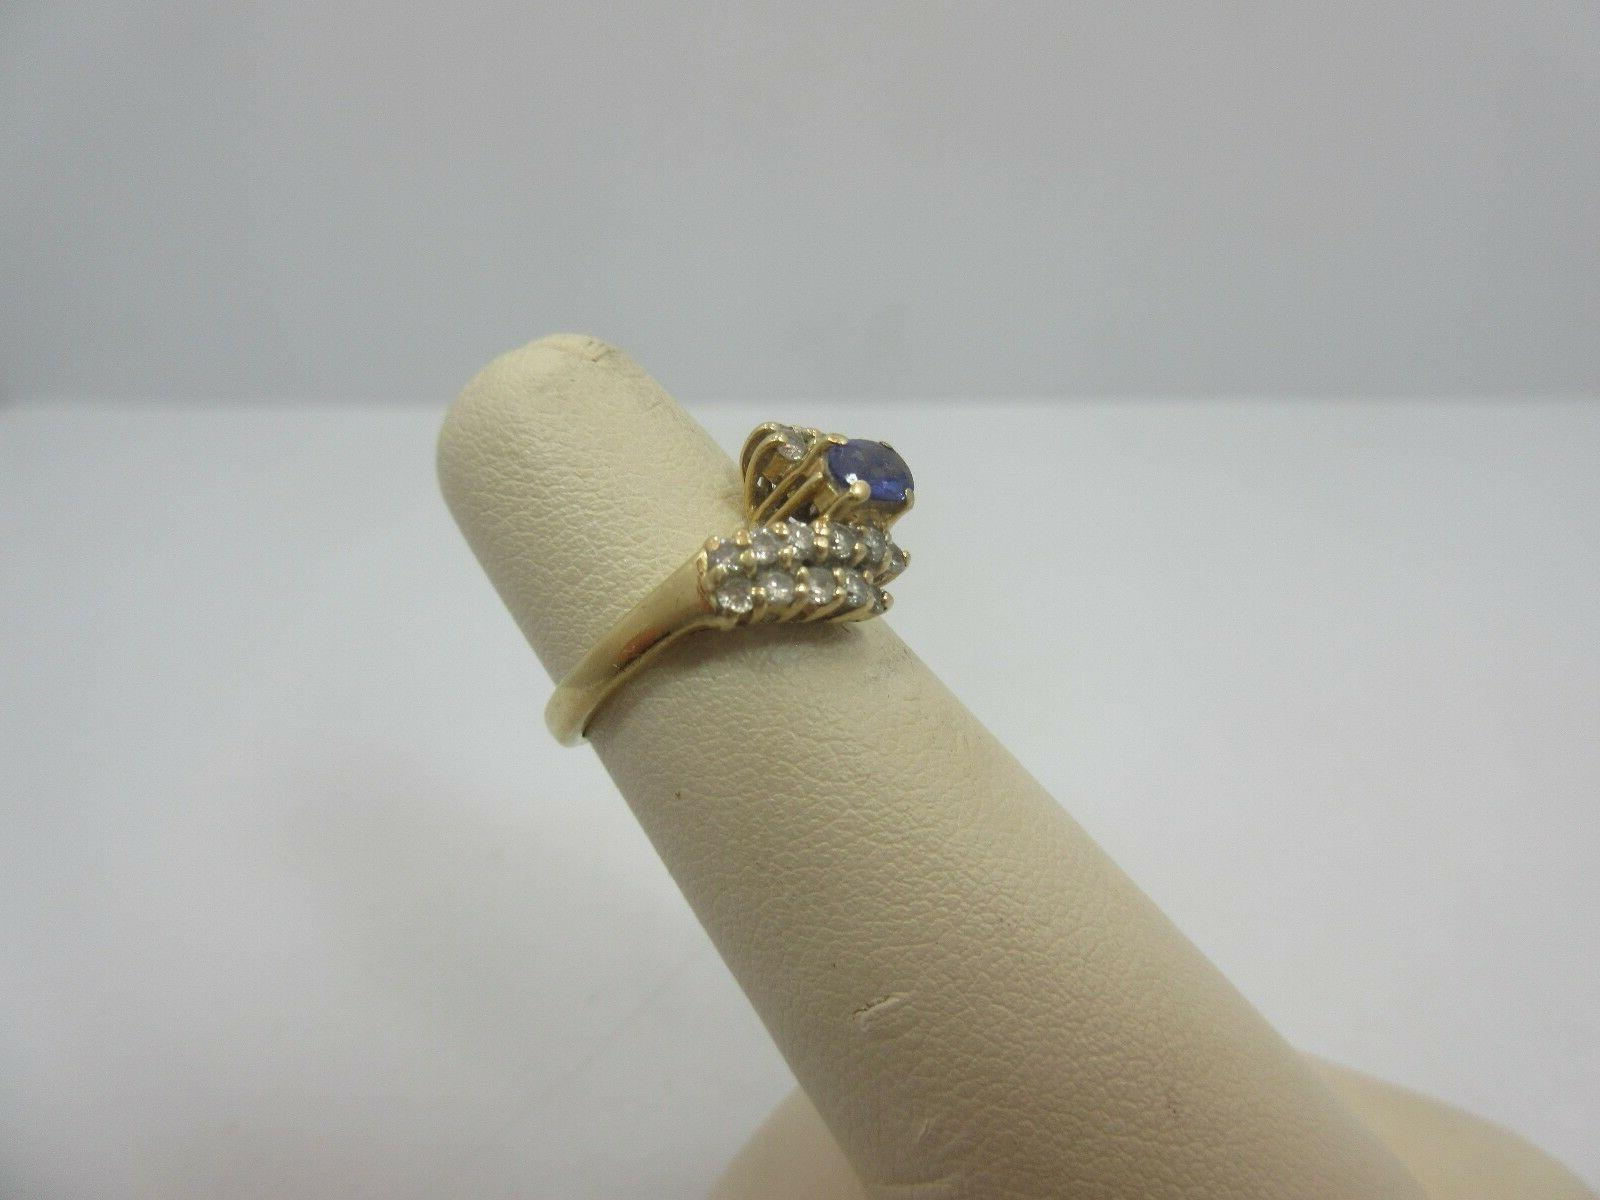 LeVian 14k OVAL Engagement RING size 5.5